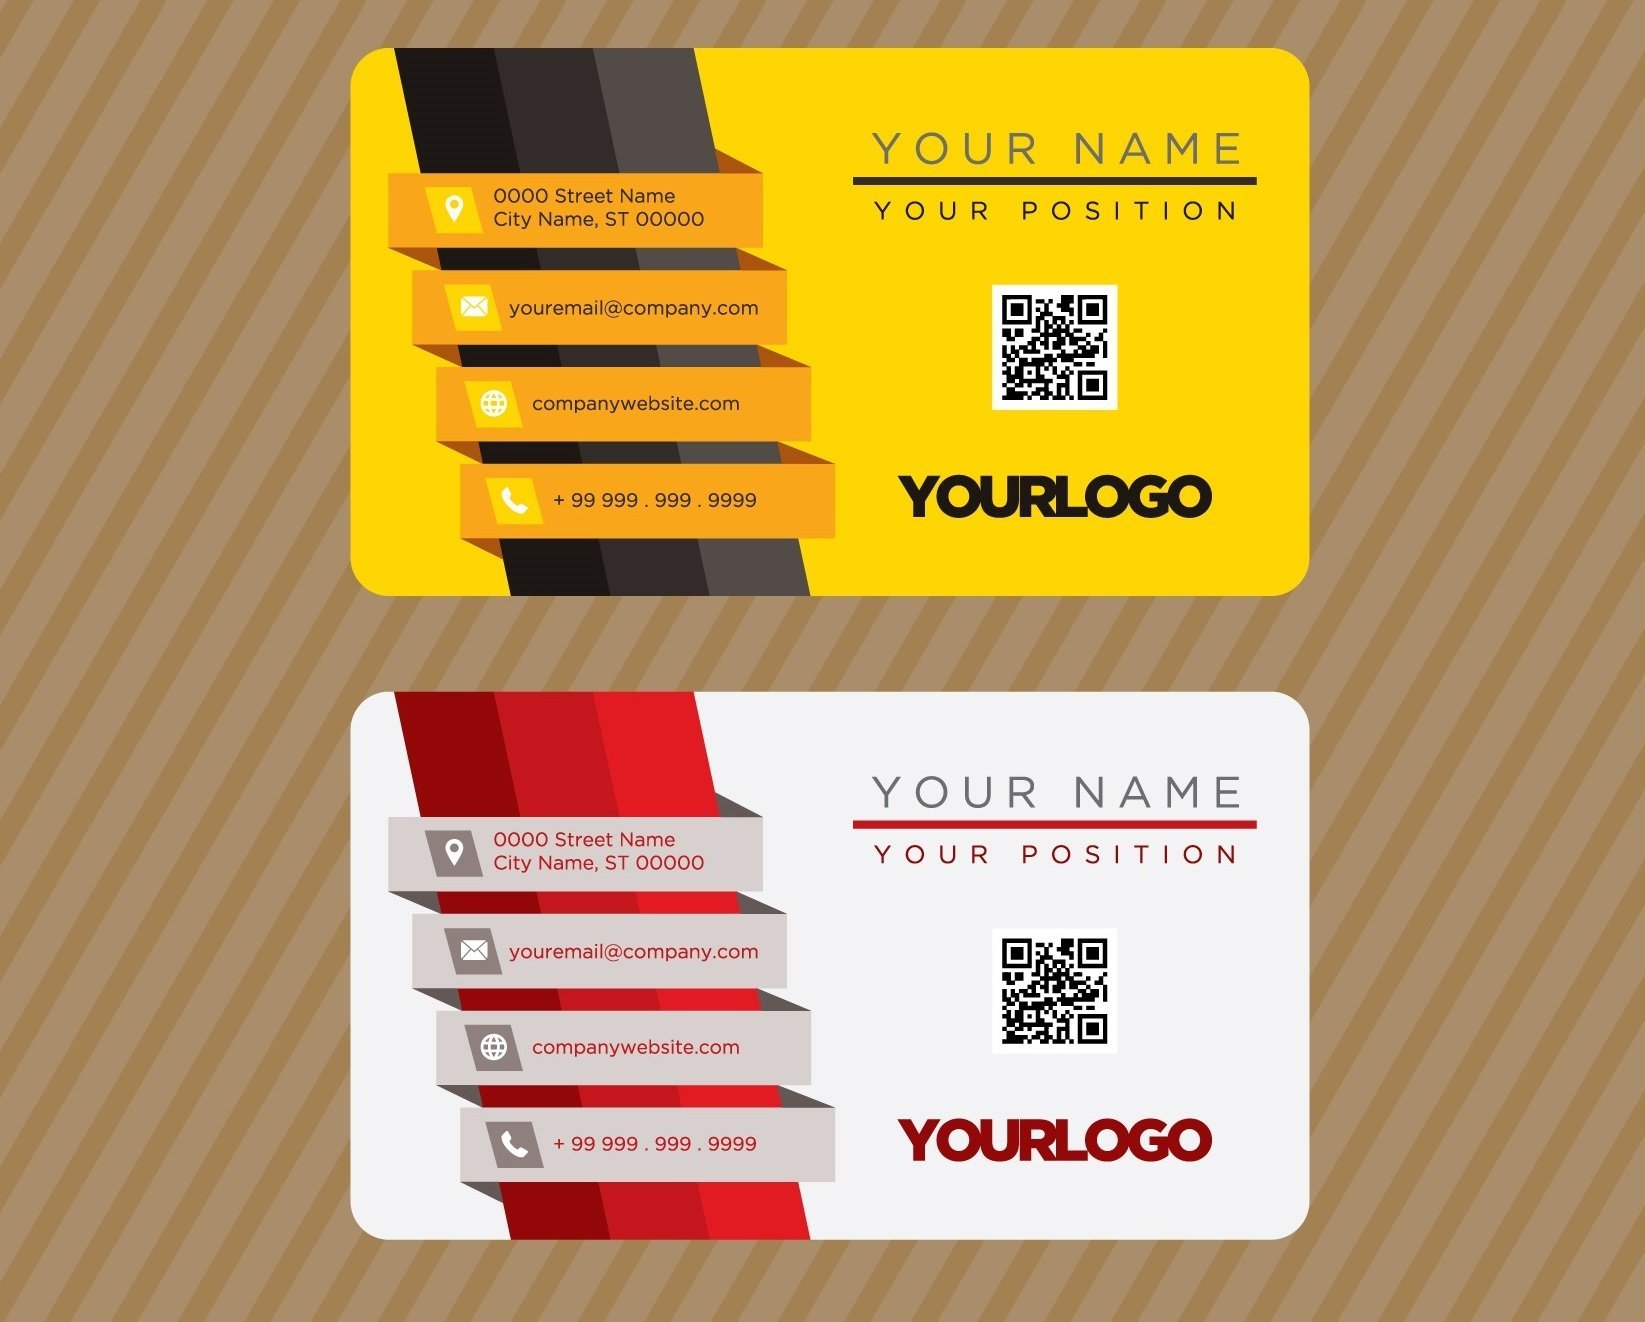 Print business cards dubai media city image collections card print business cards dubai media city thank you for visiting reheart nowadays were excited to declare that we have discovered an incredibly interesting reheart Gallery